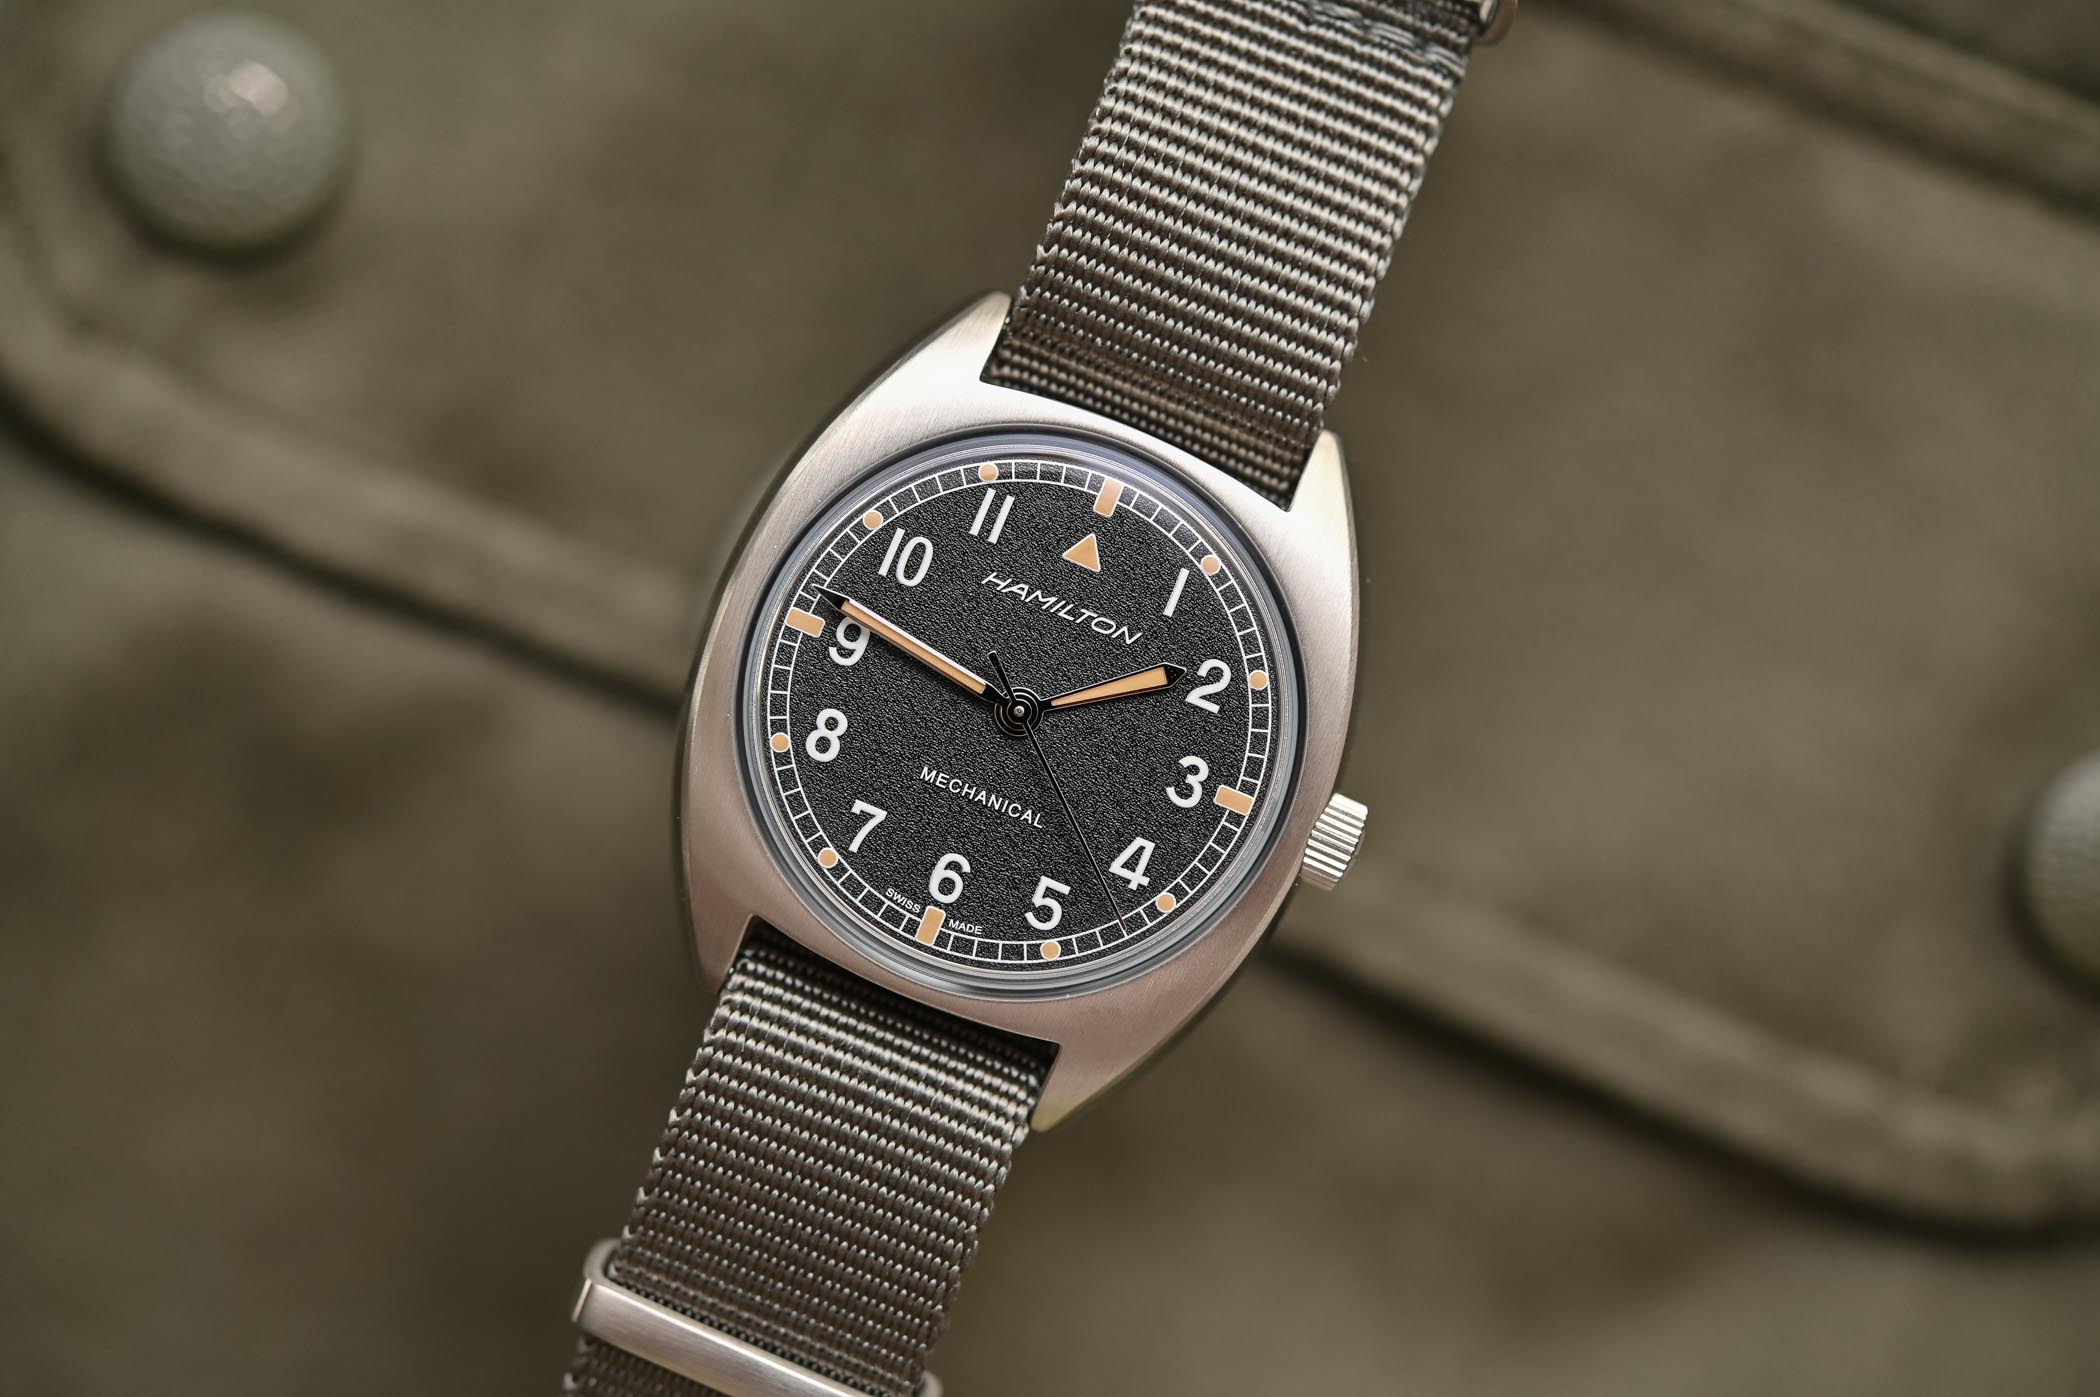 Hamilton Khaki Pilot Pioneer Mechanical - Reedition hamilton W10